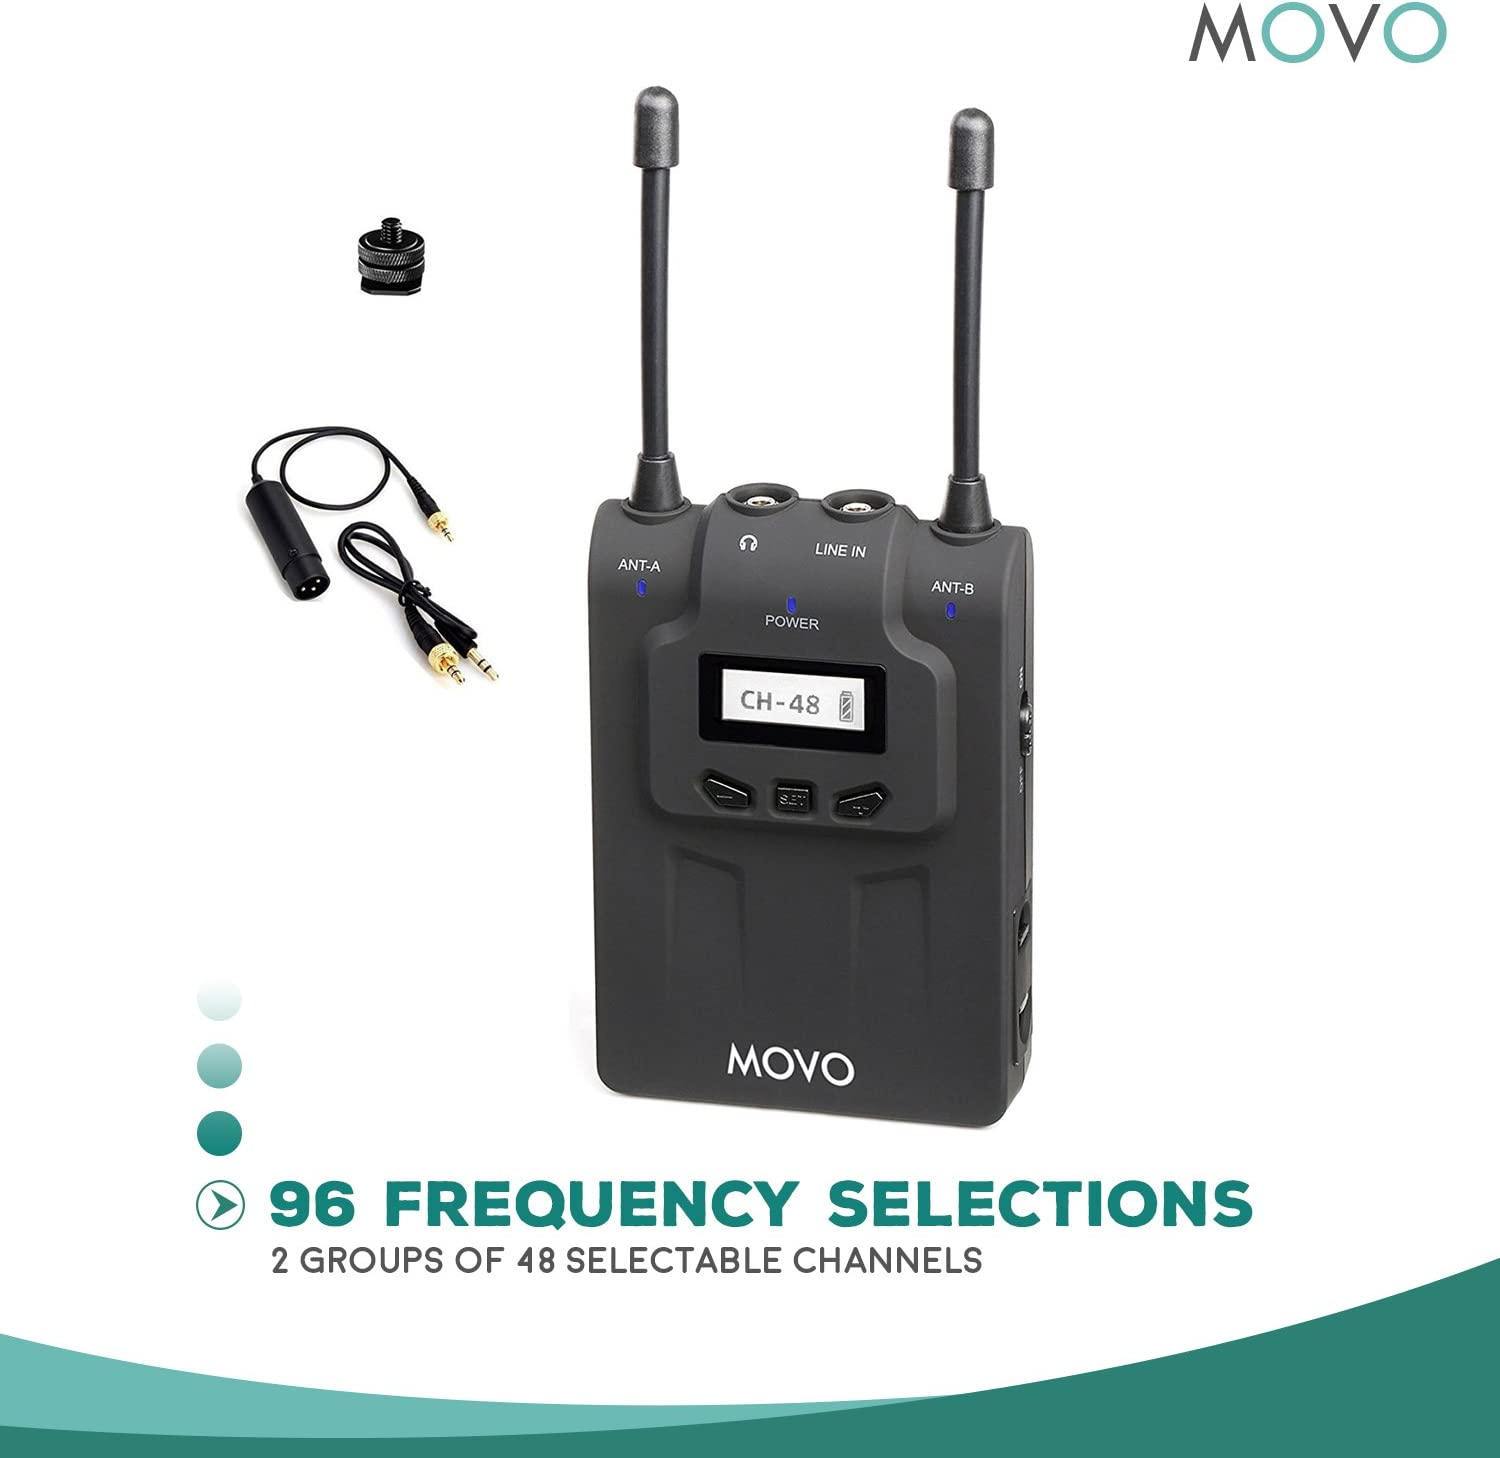 Movo WMIC80 UHF Wireless XLR Microphone System with 2 Plug-in XLR Transmitters Portable Receiver 330 Range Shoe Mount for DSLR Cameras